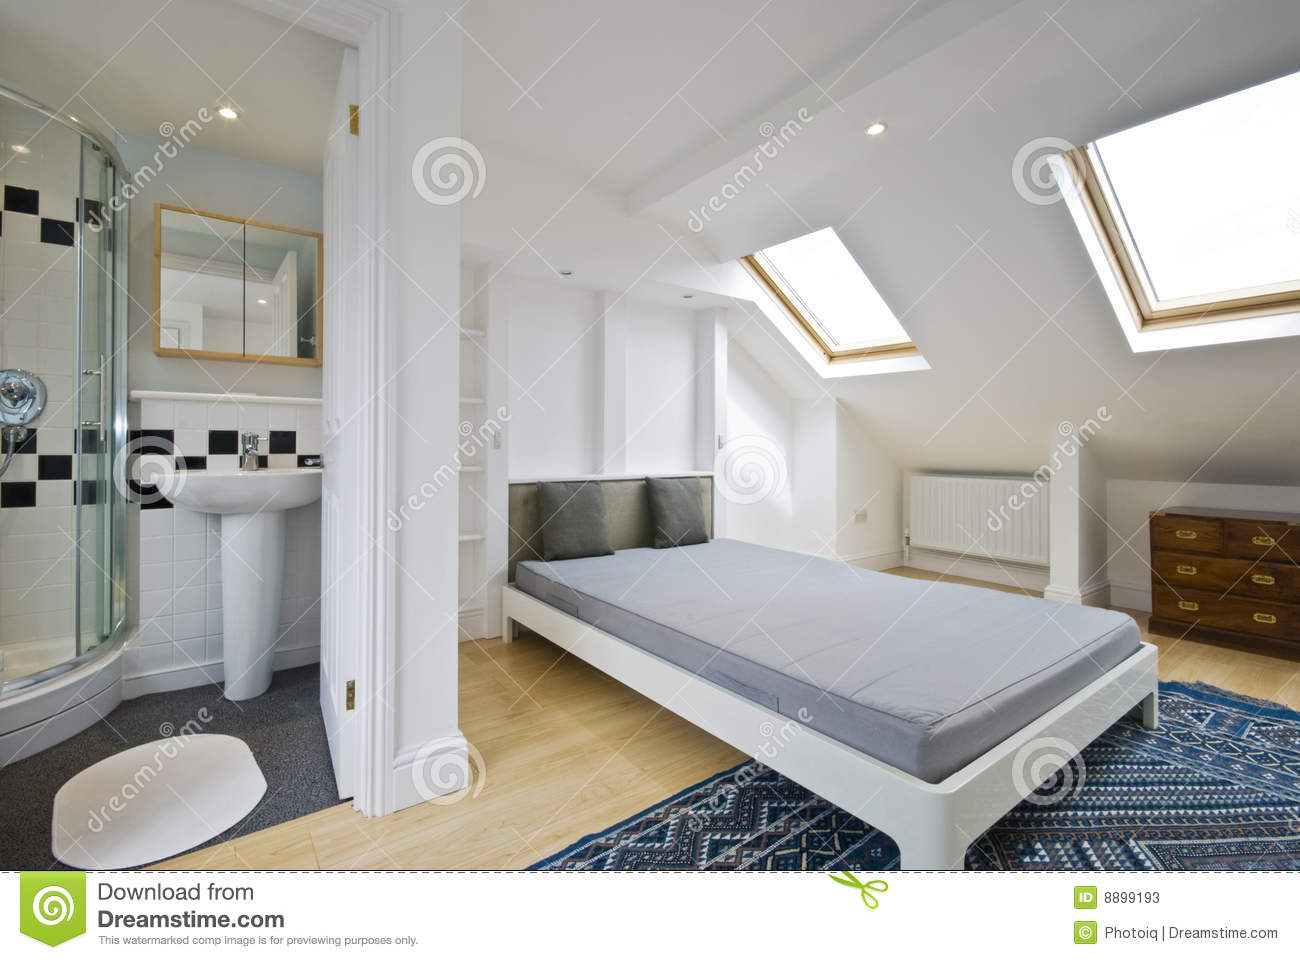 Bedroom with en suite bathroom stock image image of for Petite salle de bain dans chambre